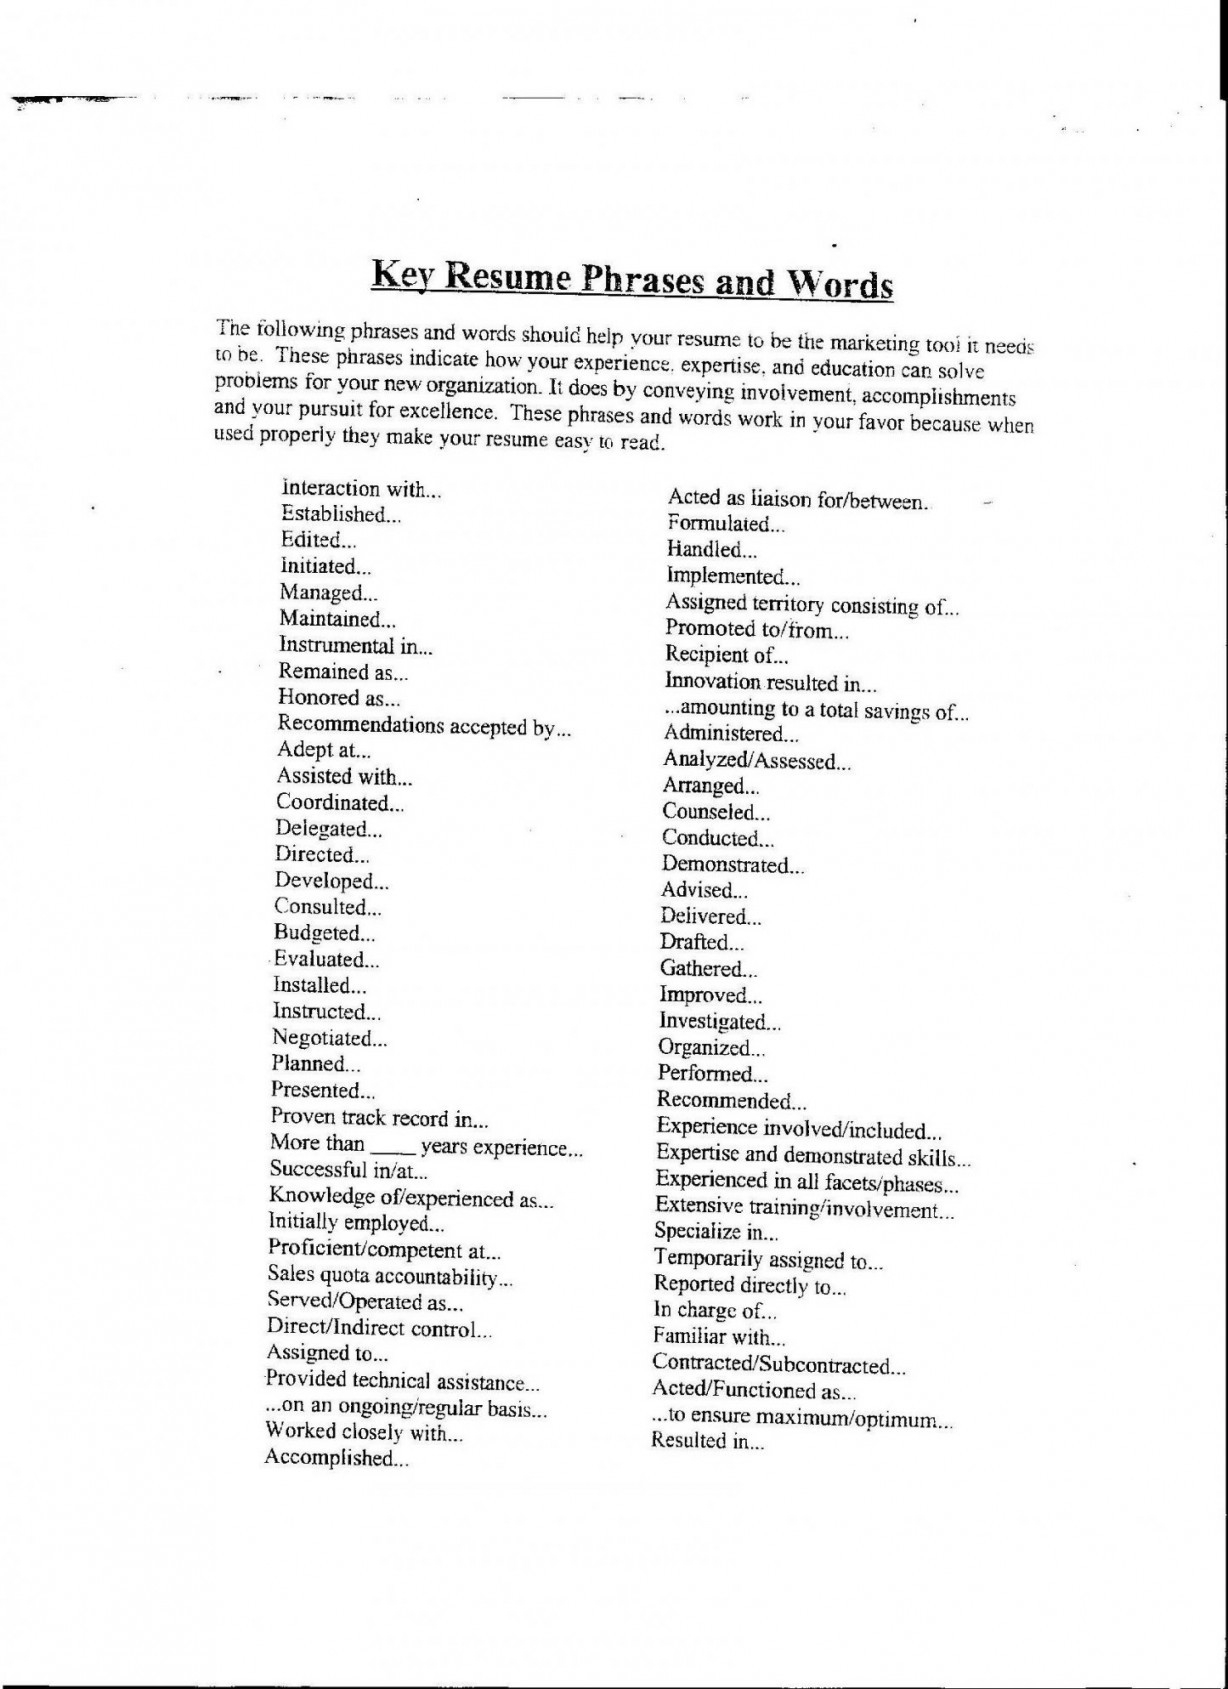 Reference Letter Template Word Document - Resume Keywords List Unique Cover Letter Buzz Words Gallery